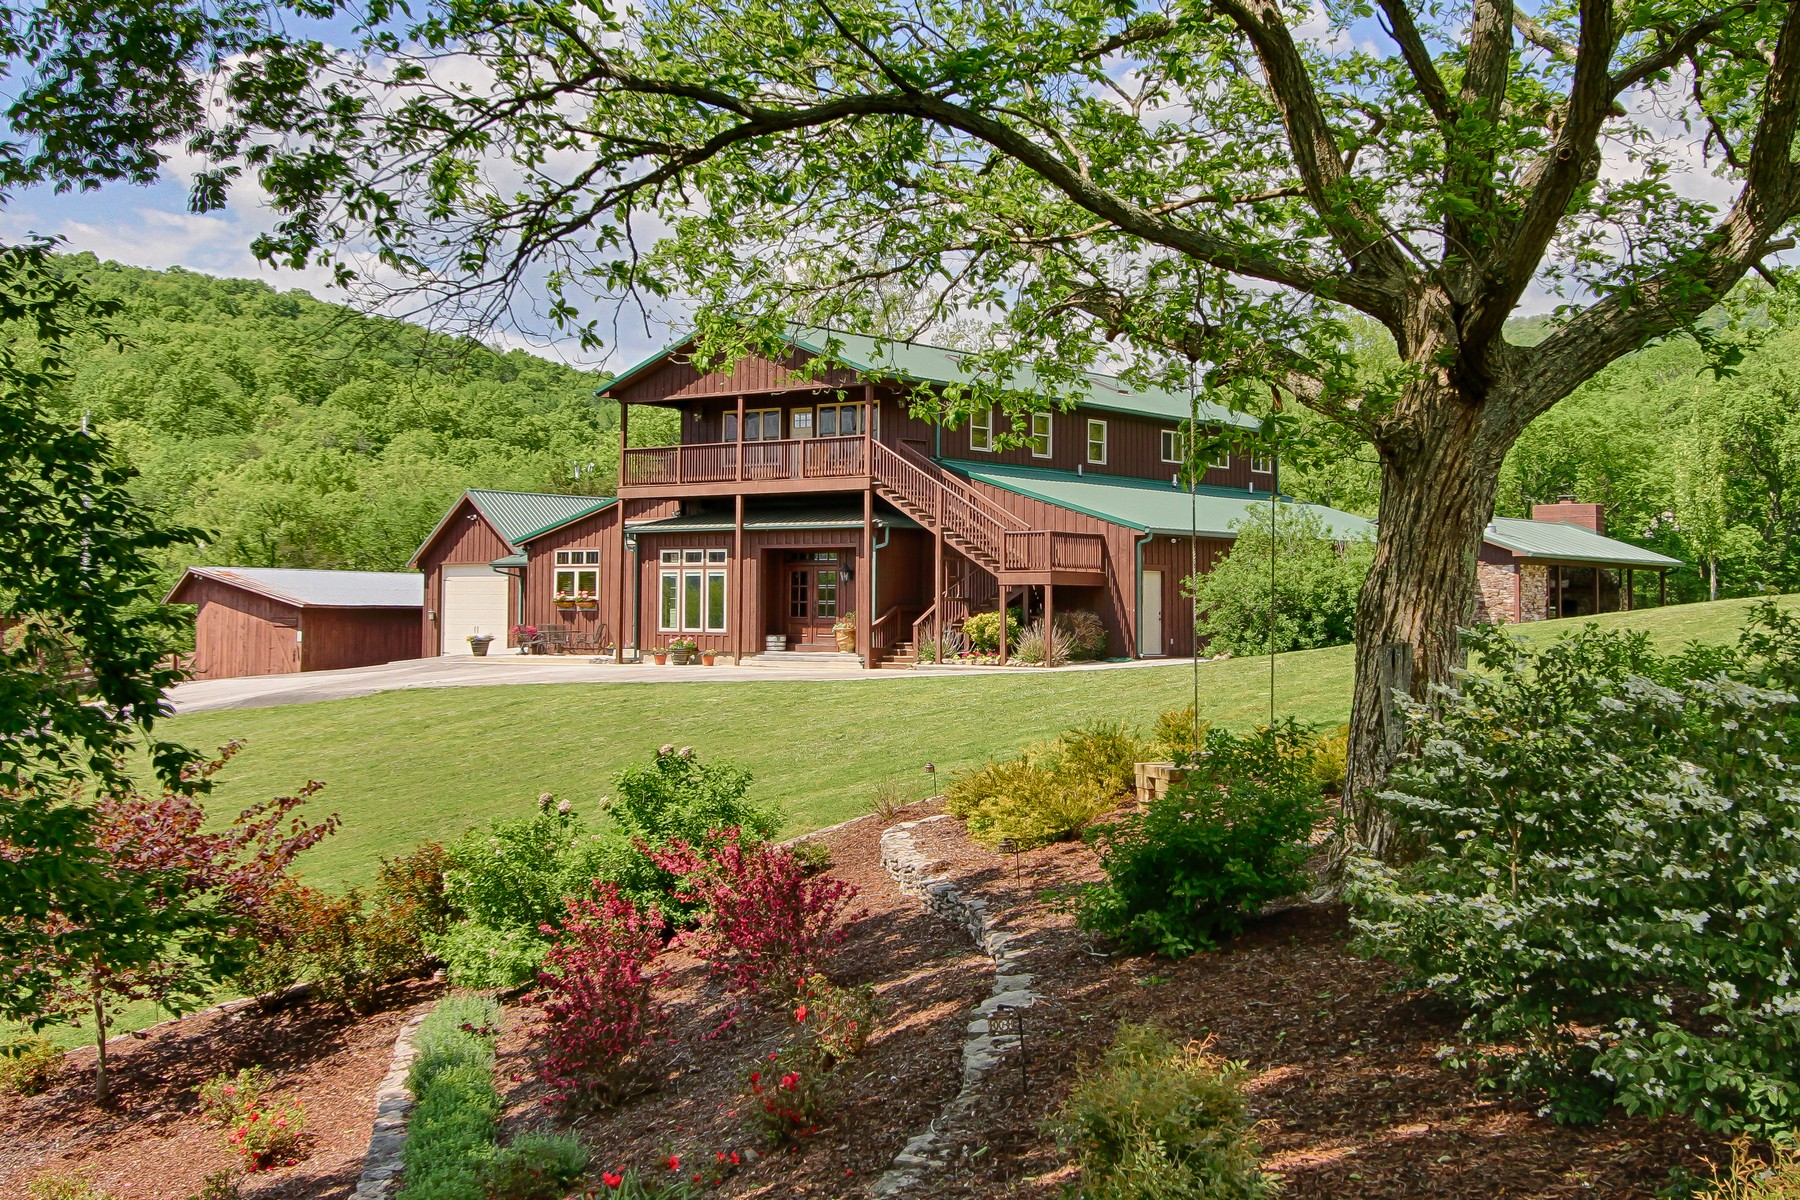 Single Family Home for Sale at SpringTree Farm 979 Wilson Cemetery Road Pikeville, Tennessee 37367 United States